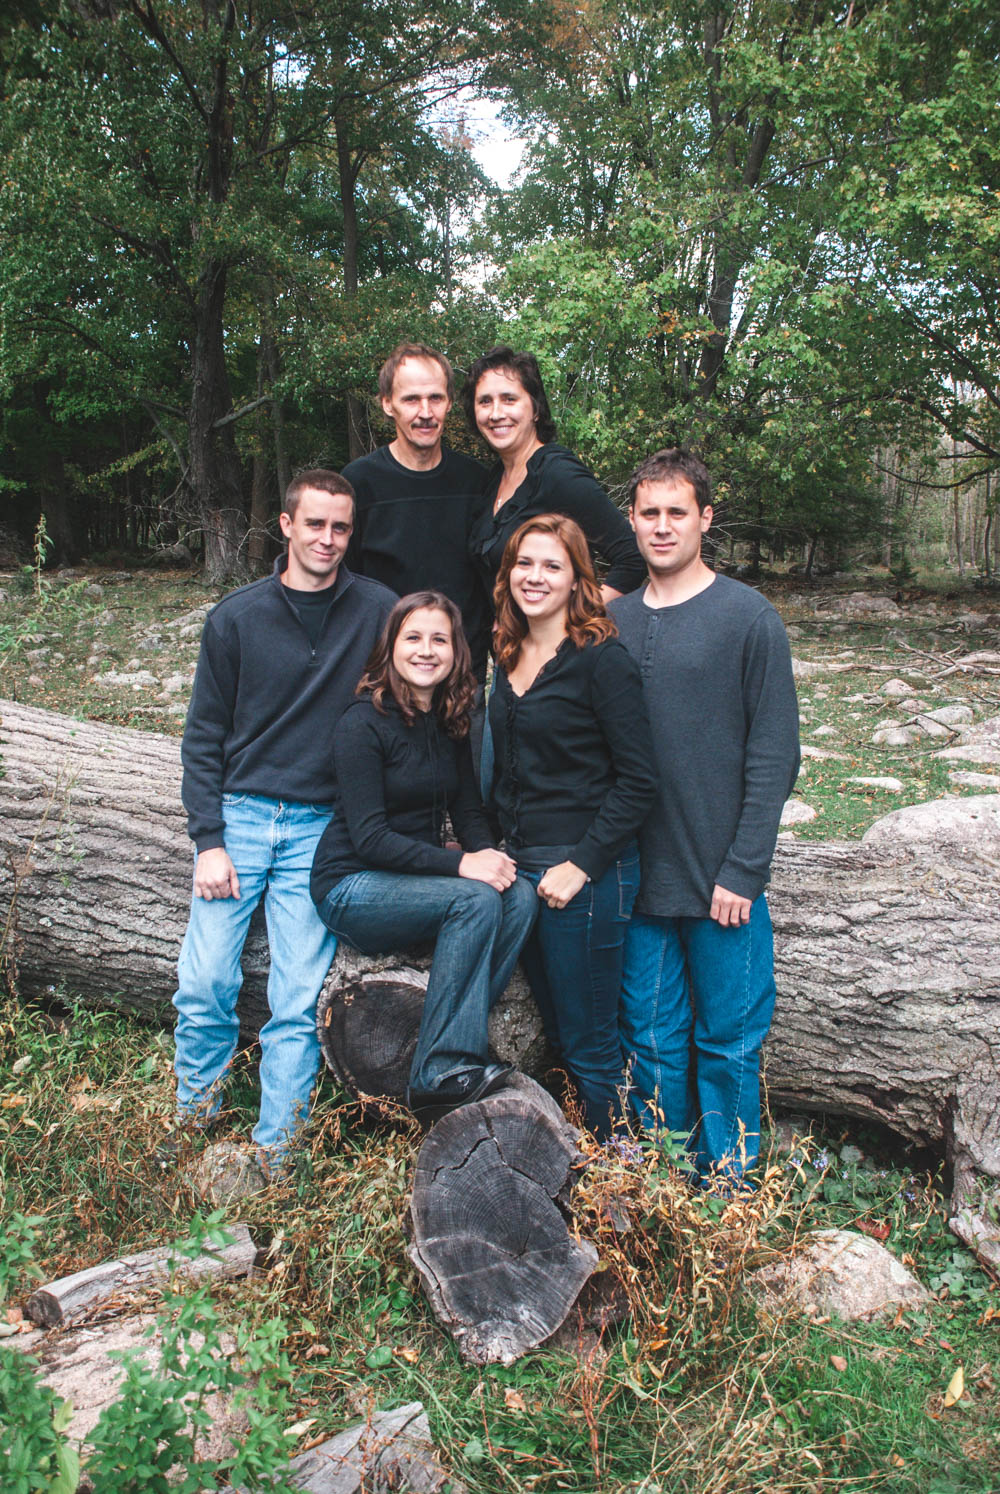 Rustic Wisconsin family portraits